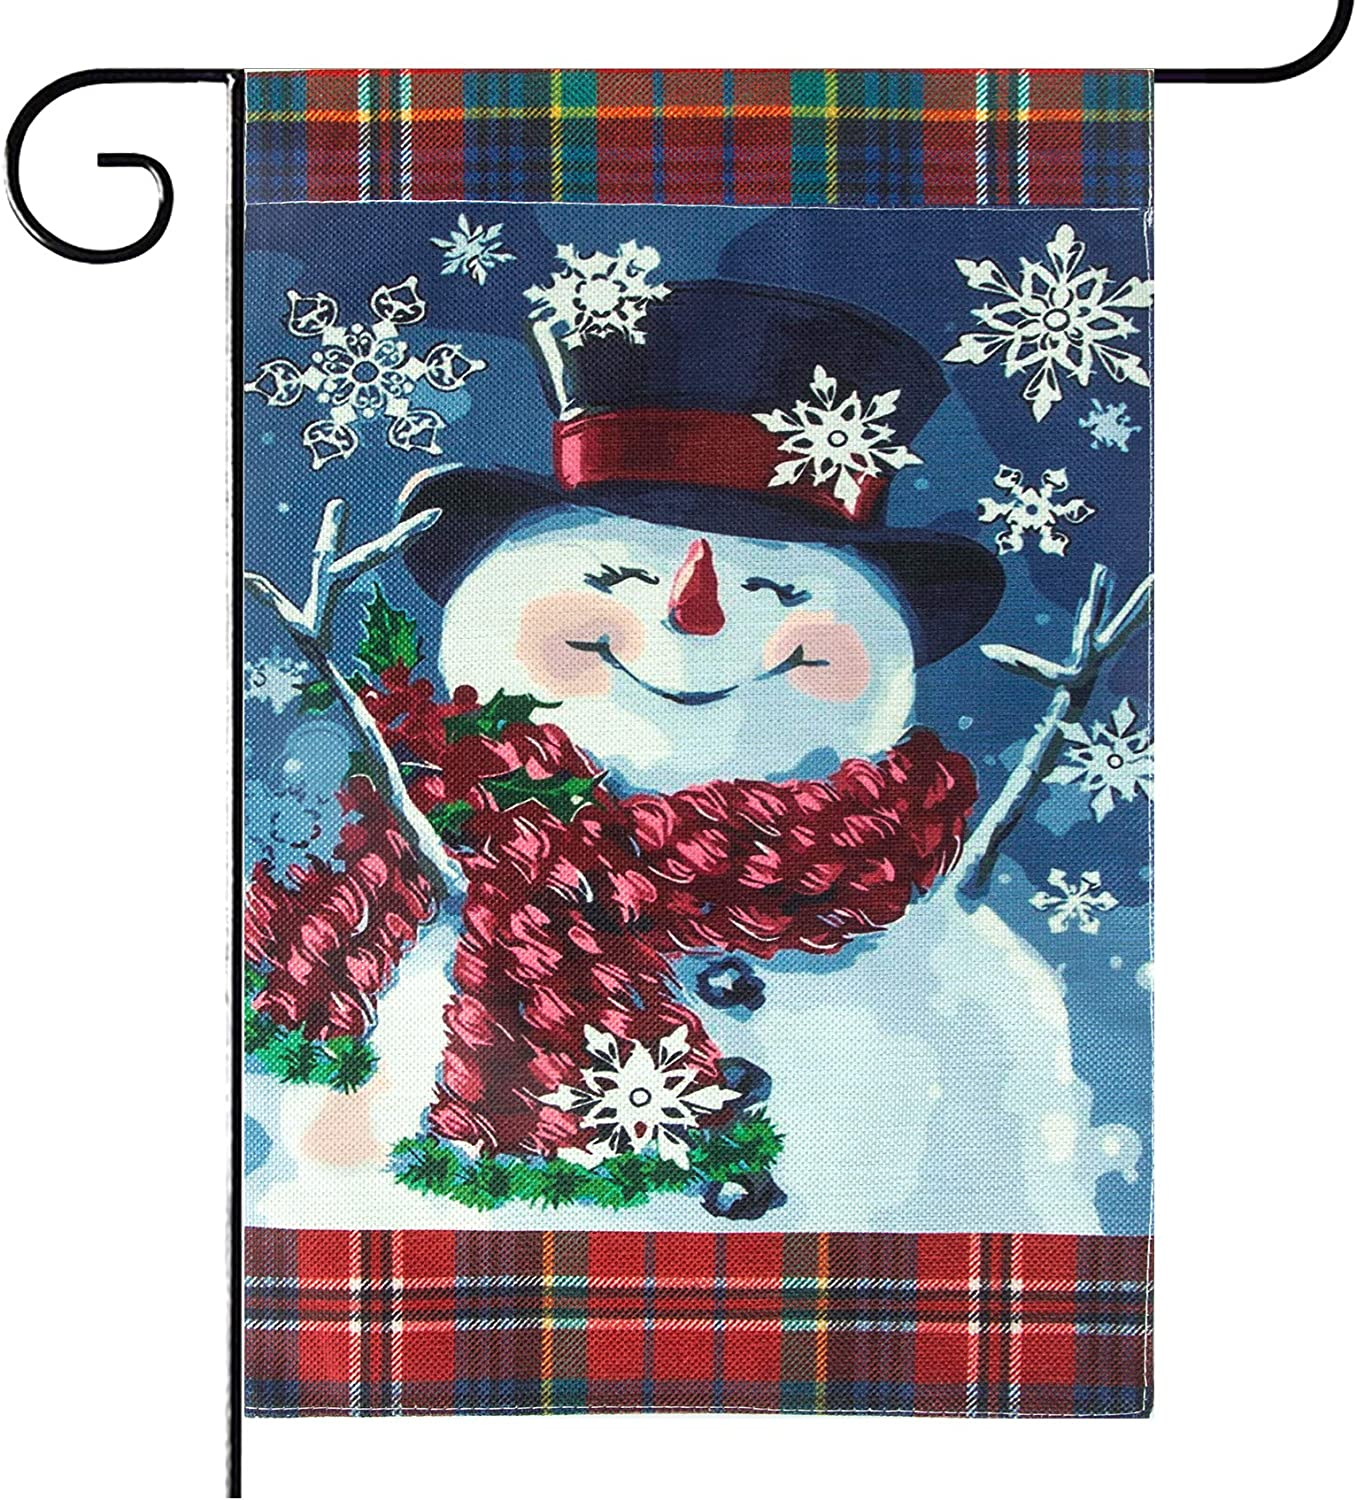 Unves Christmas Garden Flag 12.5 X 18, Smile Snowman with Red Scarf Snowflake Christmas Yard Flag Vertical Double Sized, Winter Holiday Primitive Vintage House Outdoor Decorations